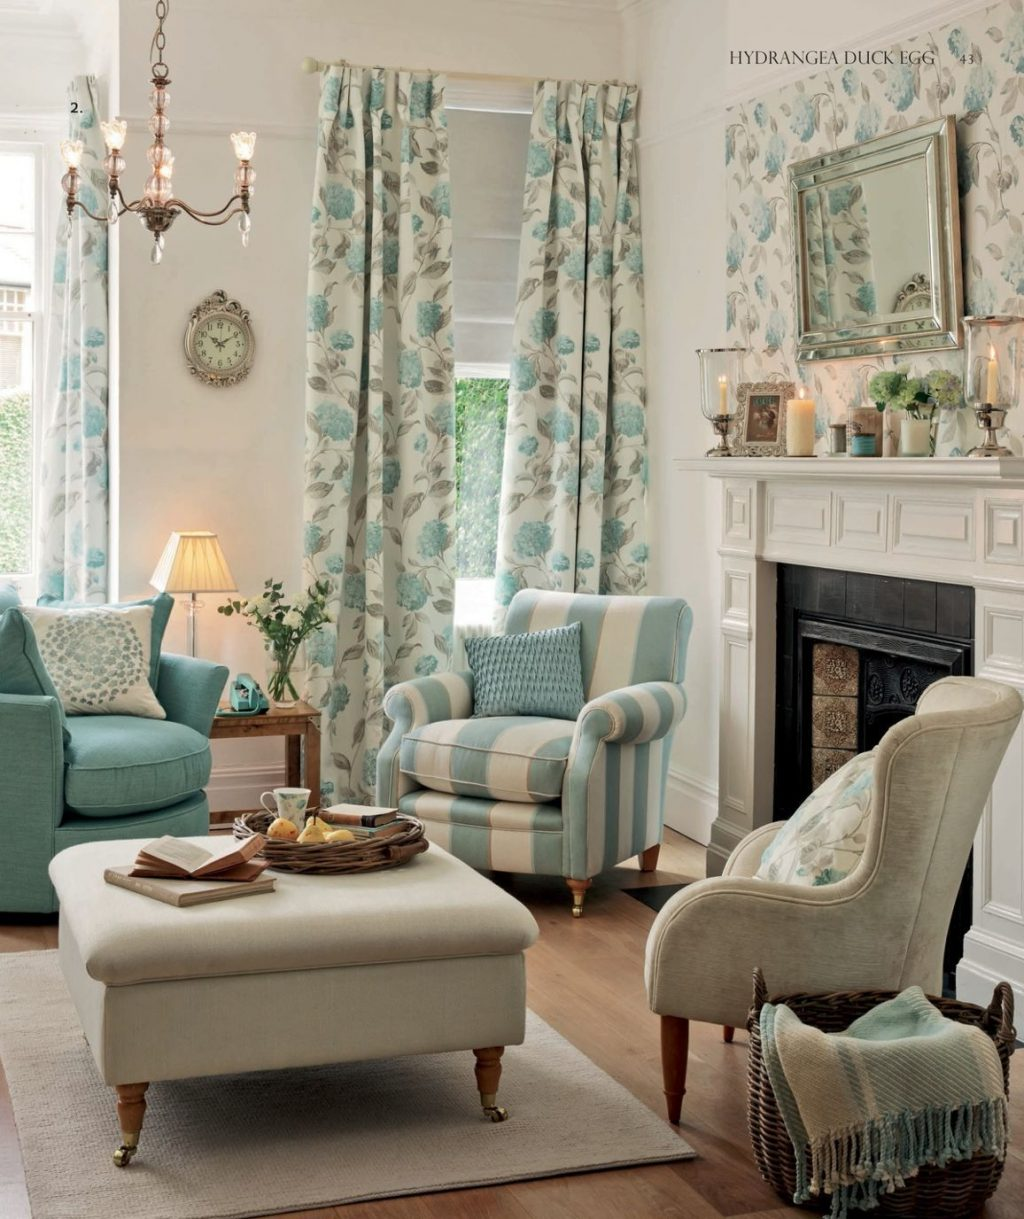 Laura Ashley Love This Living Room The Colors Are So Peaceful And